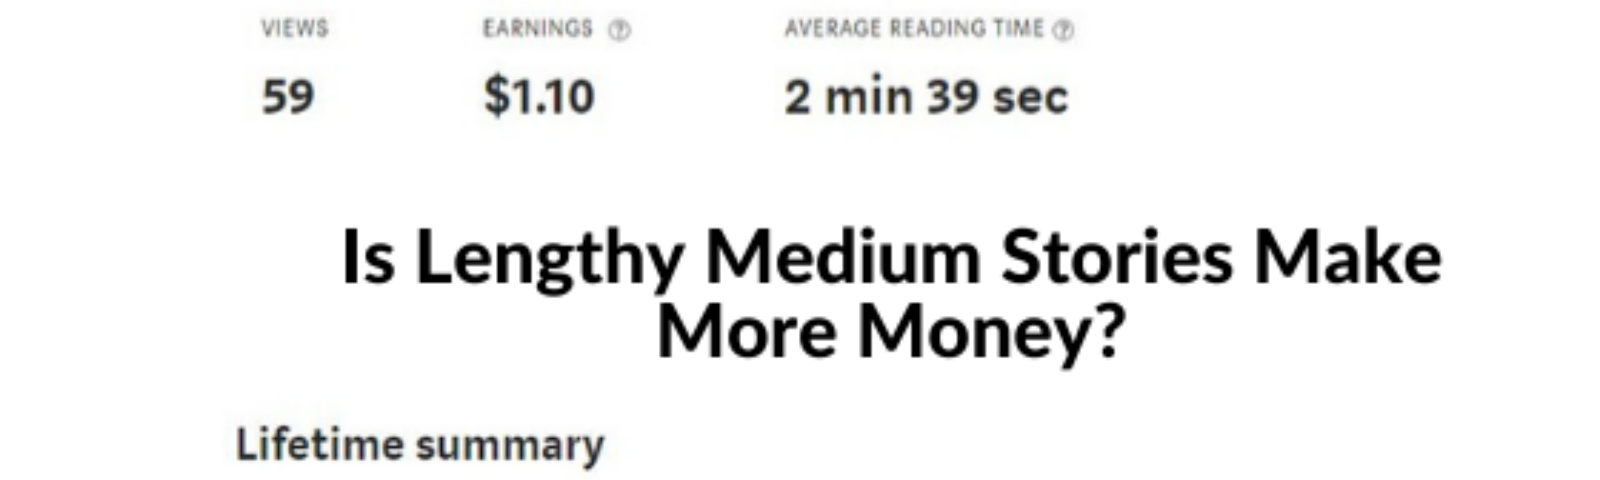 A comparison of earning of 6- Minutes Read Times Verses 3—Minutes Read Time